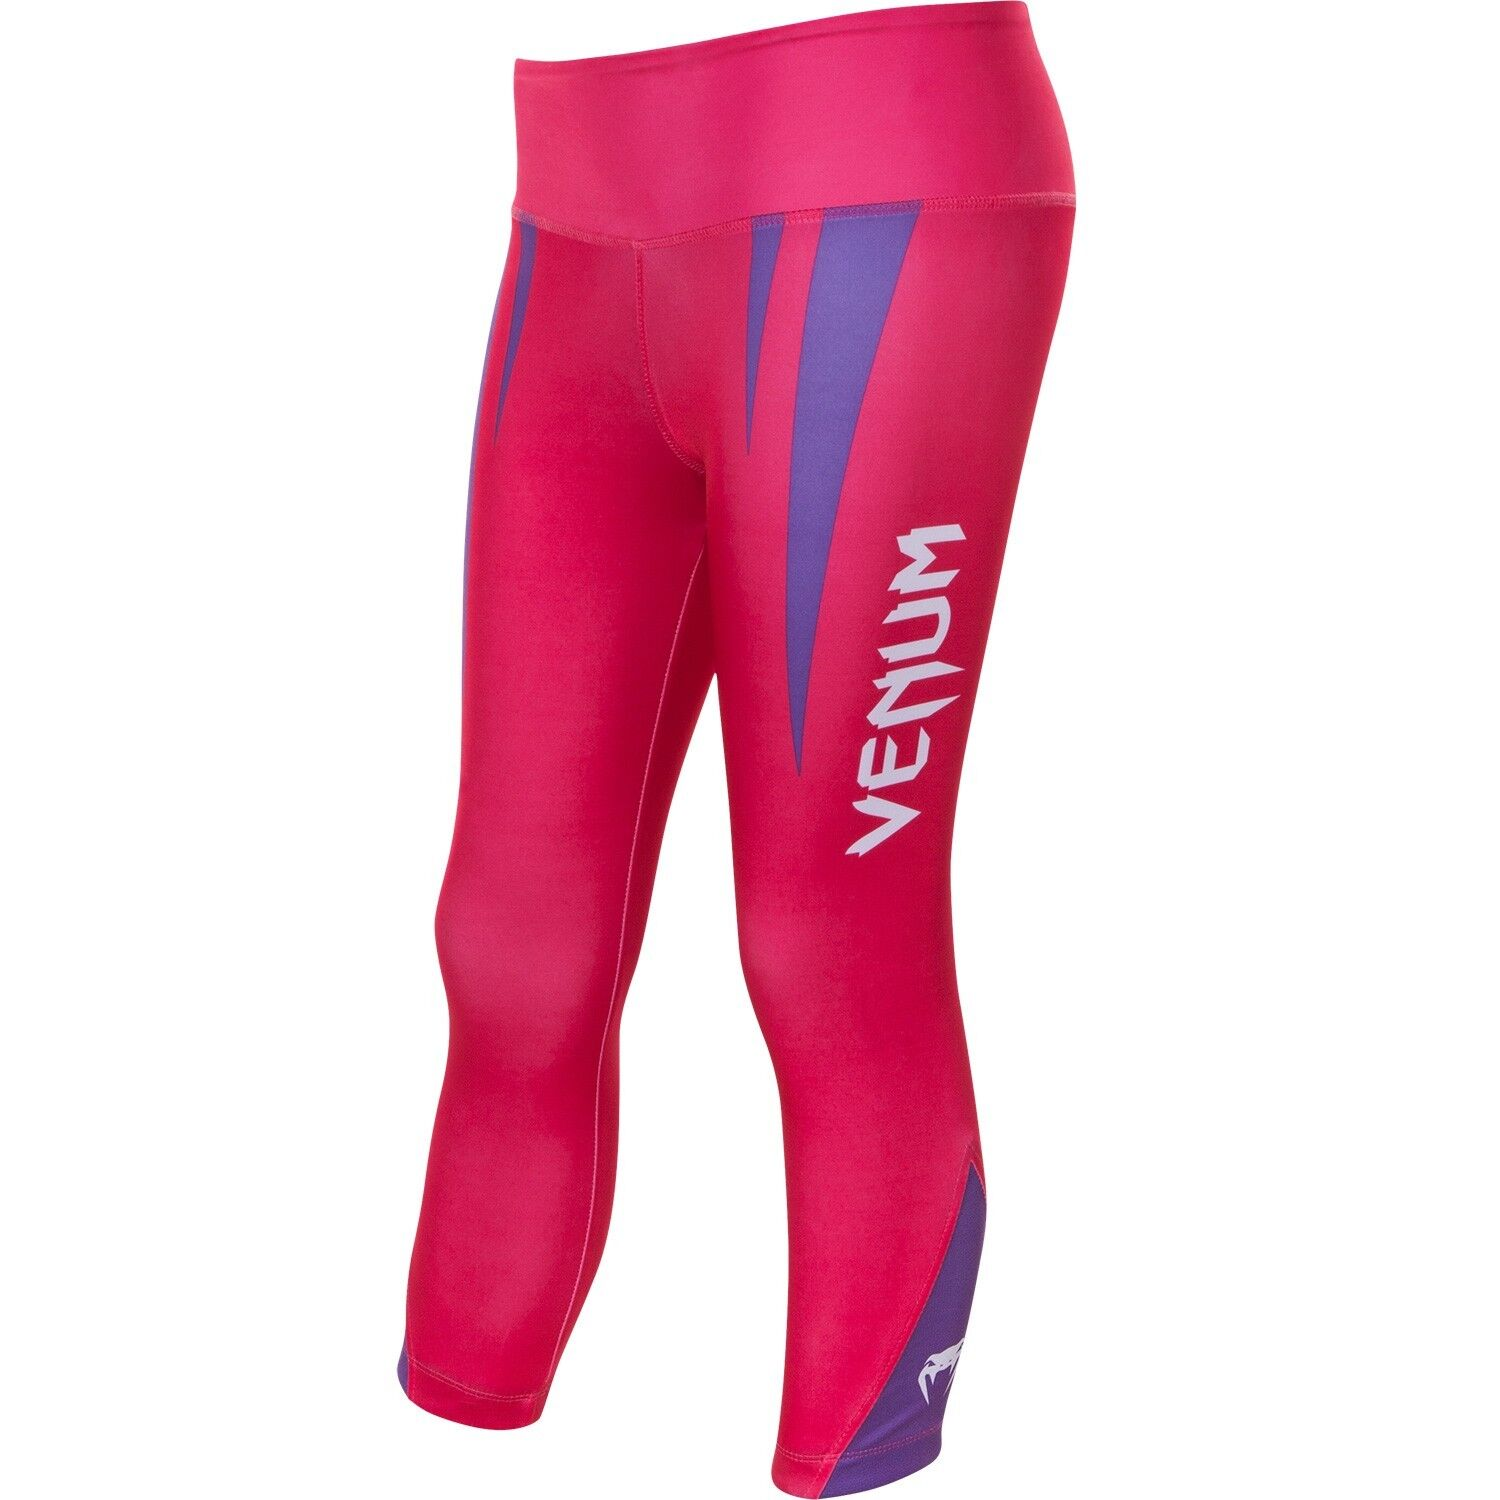 Venum Body Fit Ladies Leggings - Pink Purple - Gym Tights Fitness Pants